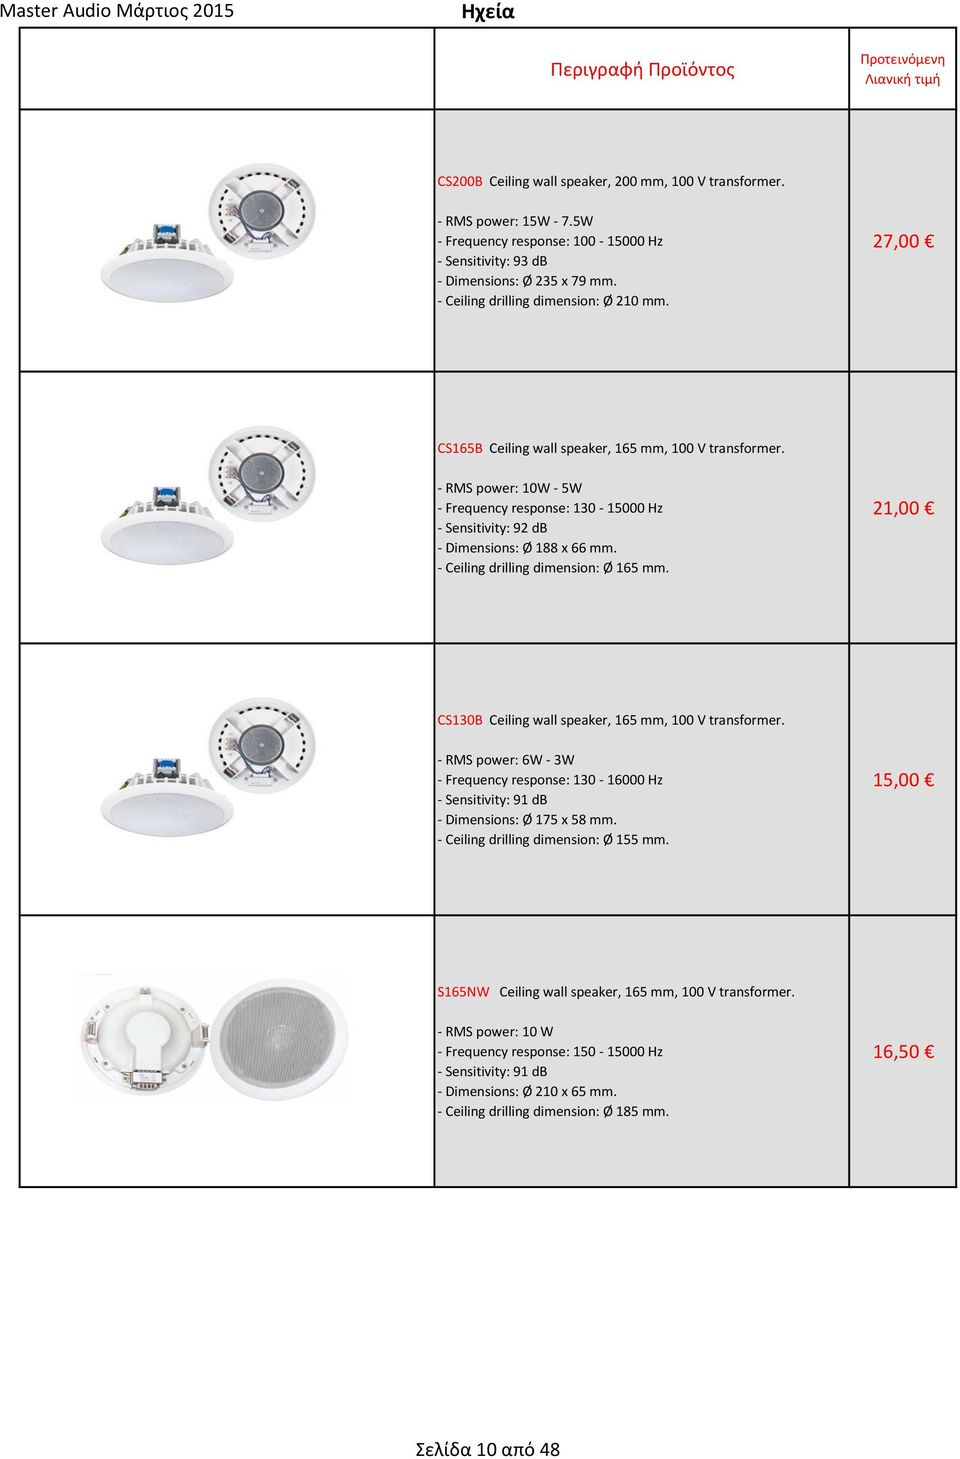 - RMS power: 10W - 5W - Frequency response: 130-15000 Hz - Sensitivity: 92 db - Dimensions: Ø 188 x 66 mm. - Ceiling drilling dimension: Ø 165 mm.